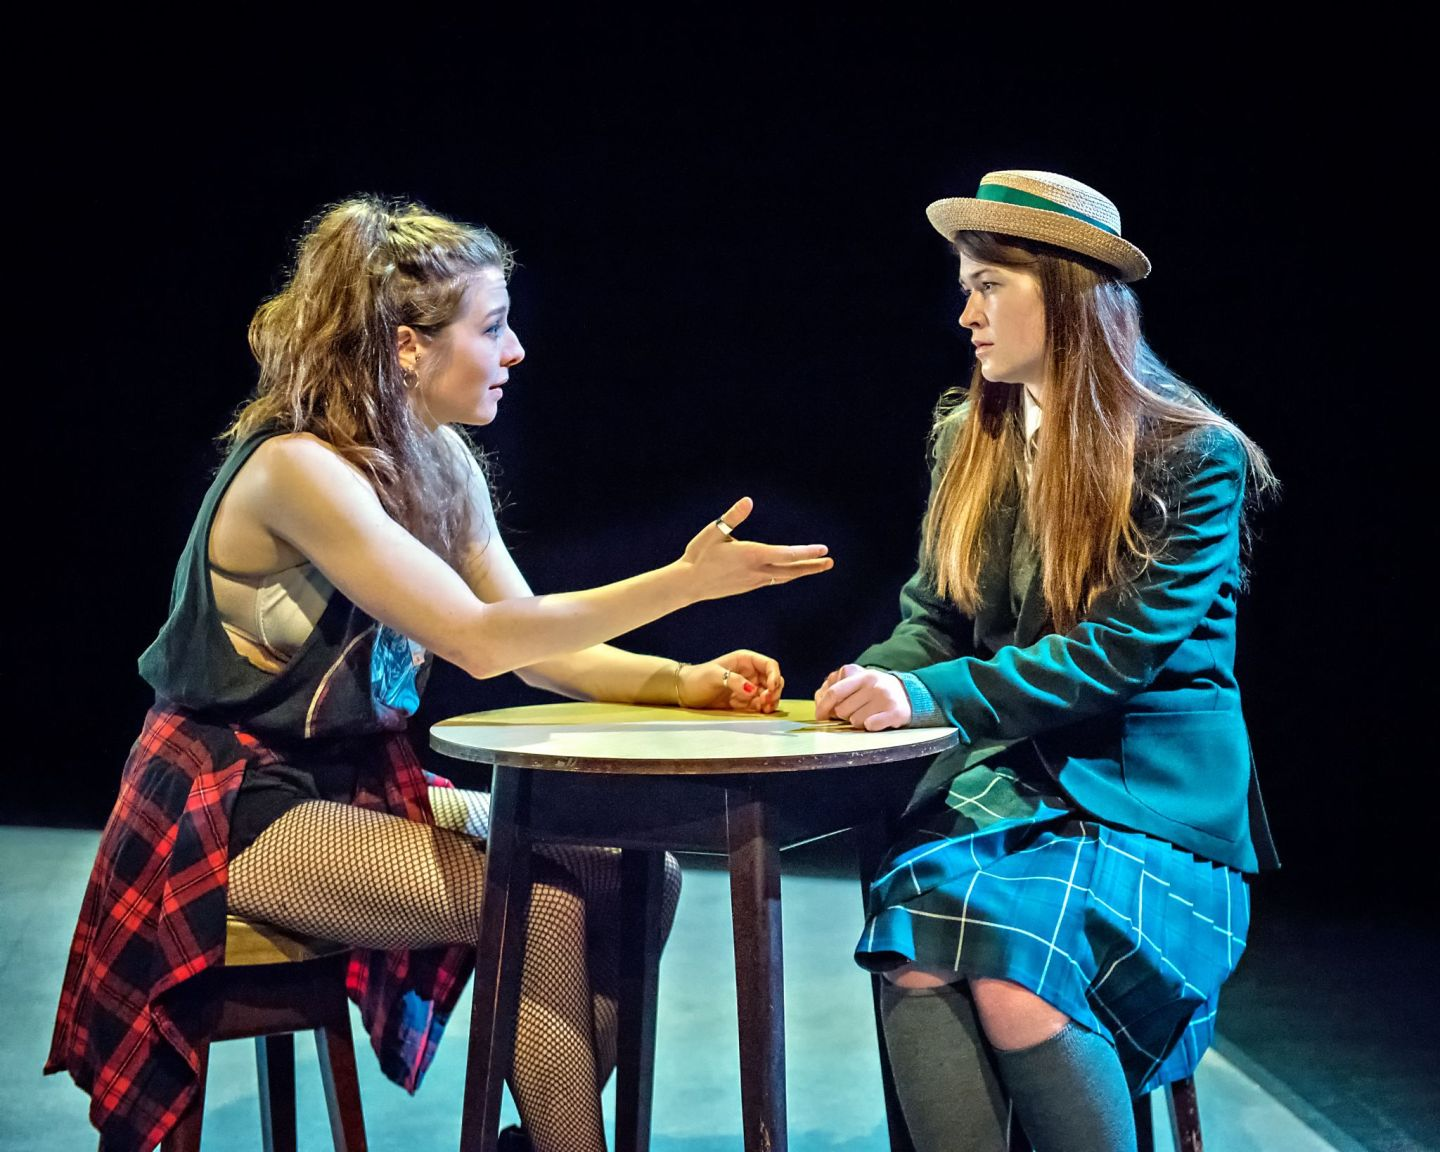 Review: ★★★★ A Girl In School Uniform Walks Into A Bar, New Diorama Theatre